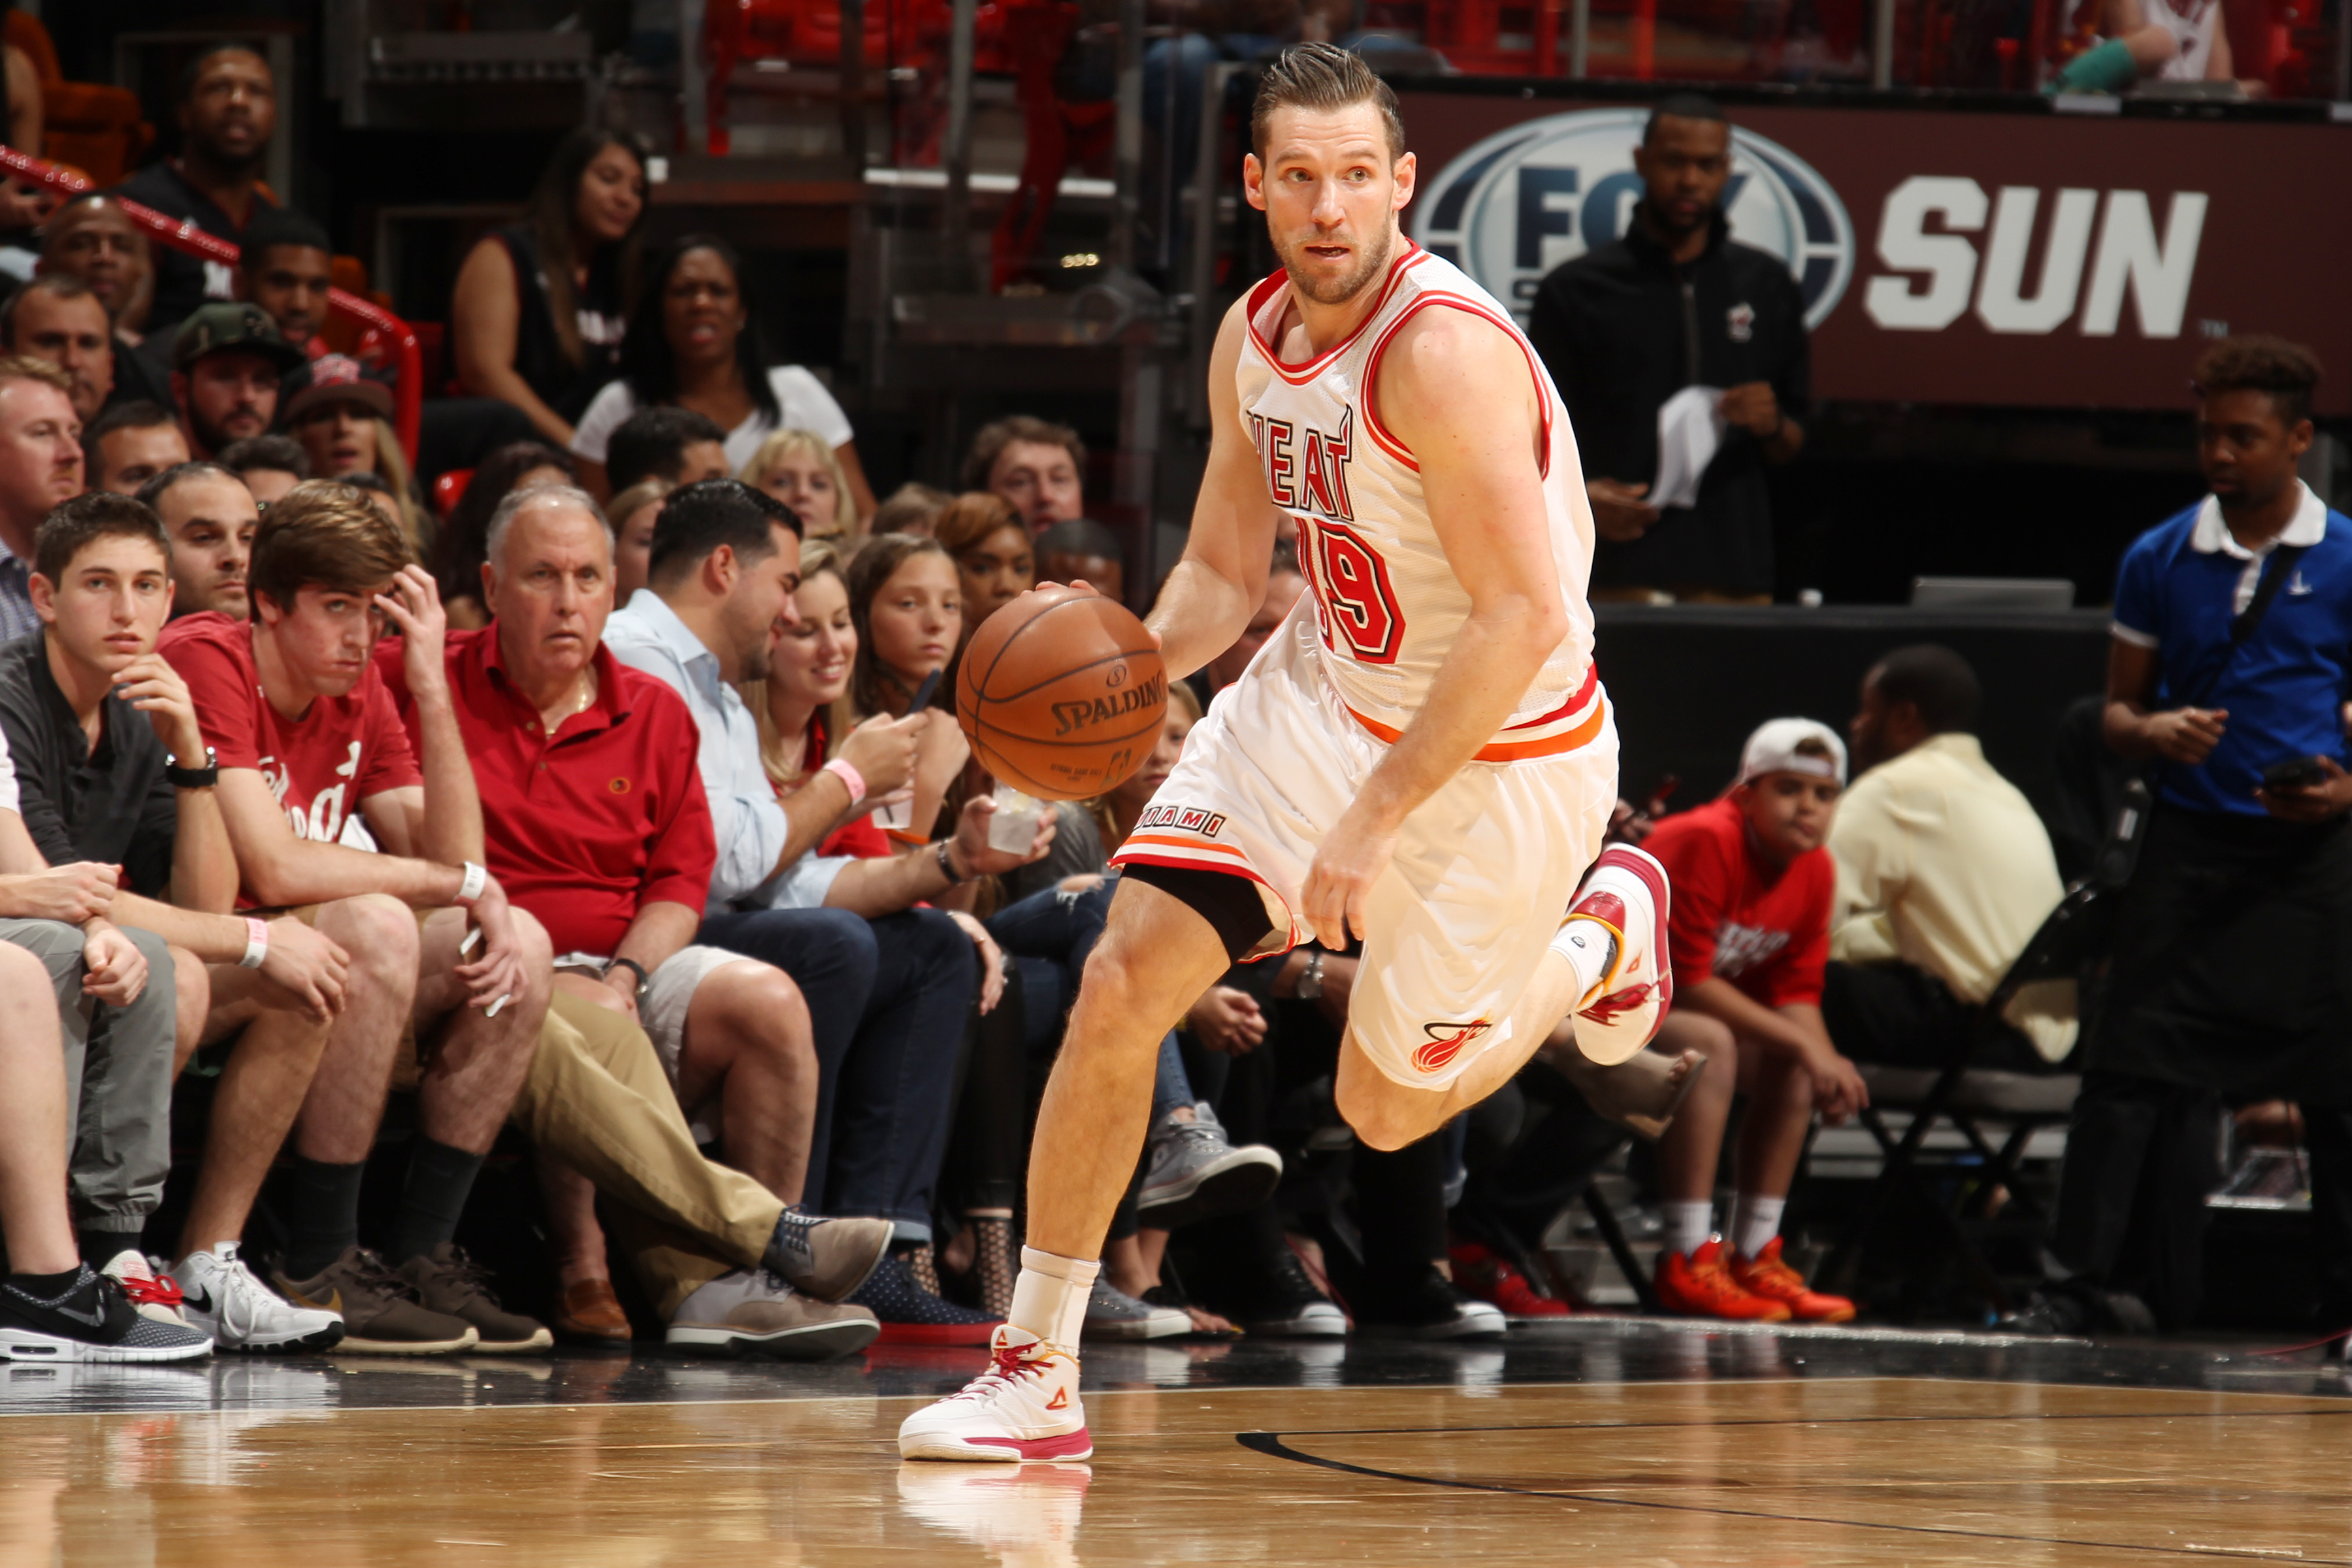 MIAMI, FL - FEBRUARY 20:  Beno Udrih #19 of the Miami Heat handles the ball against the Washington Wizards on February 20, 2016 at American Airlines Arena in Miami, Florida. (Photo by Issac Baldizon/NBAE via Getty Images)